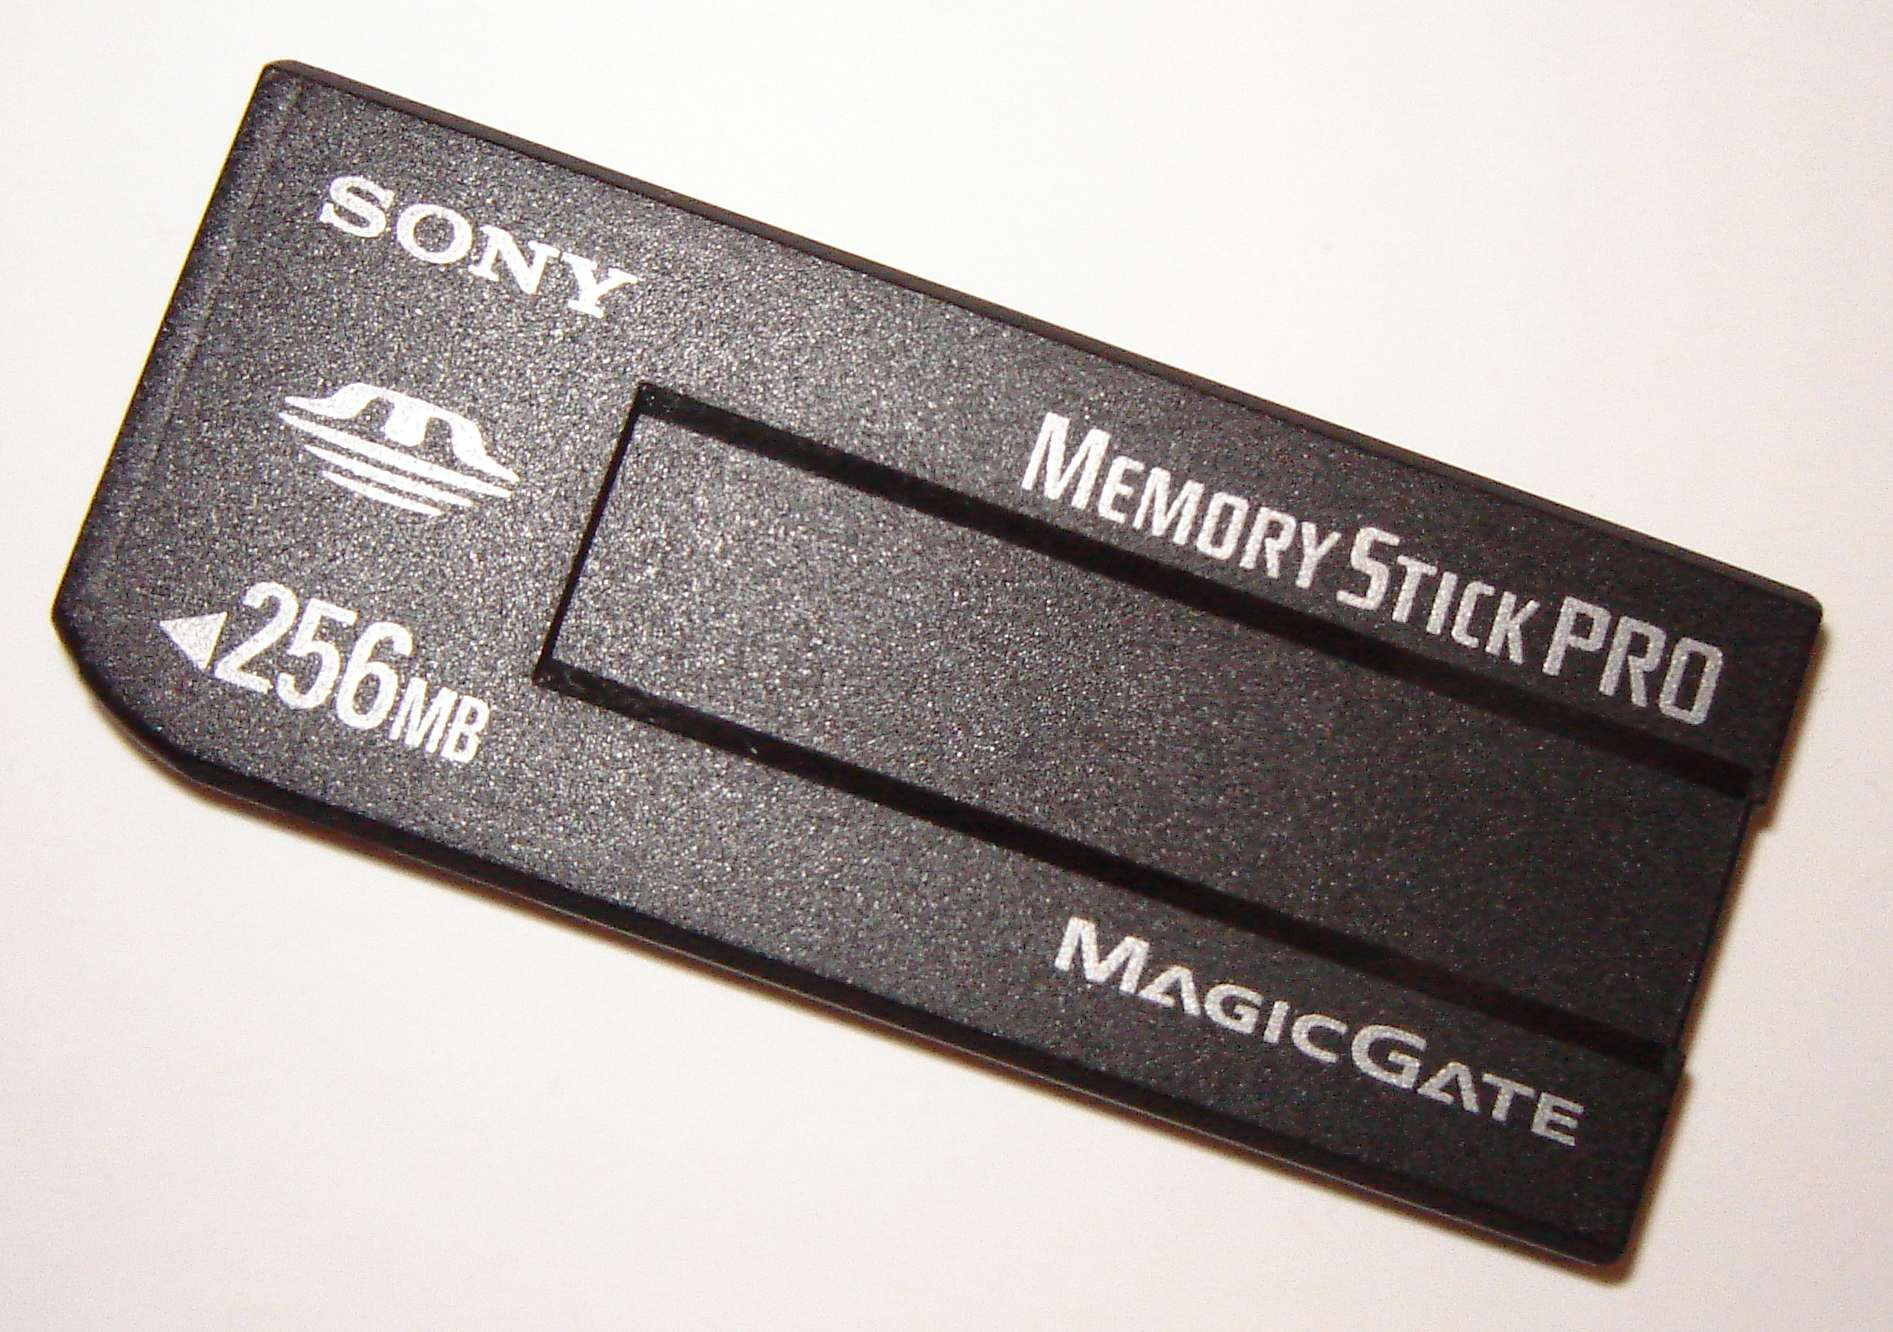 Not recognising memory stick??!?